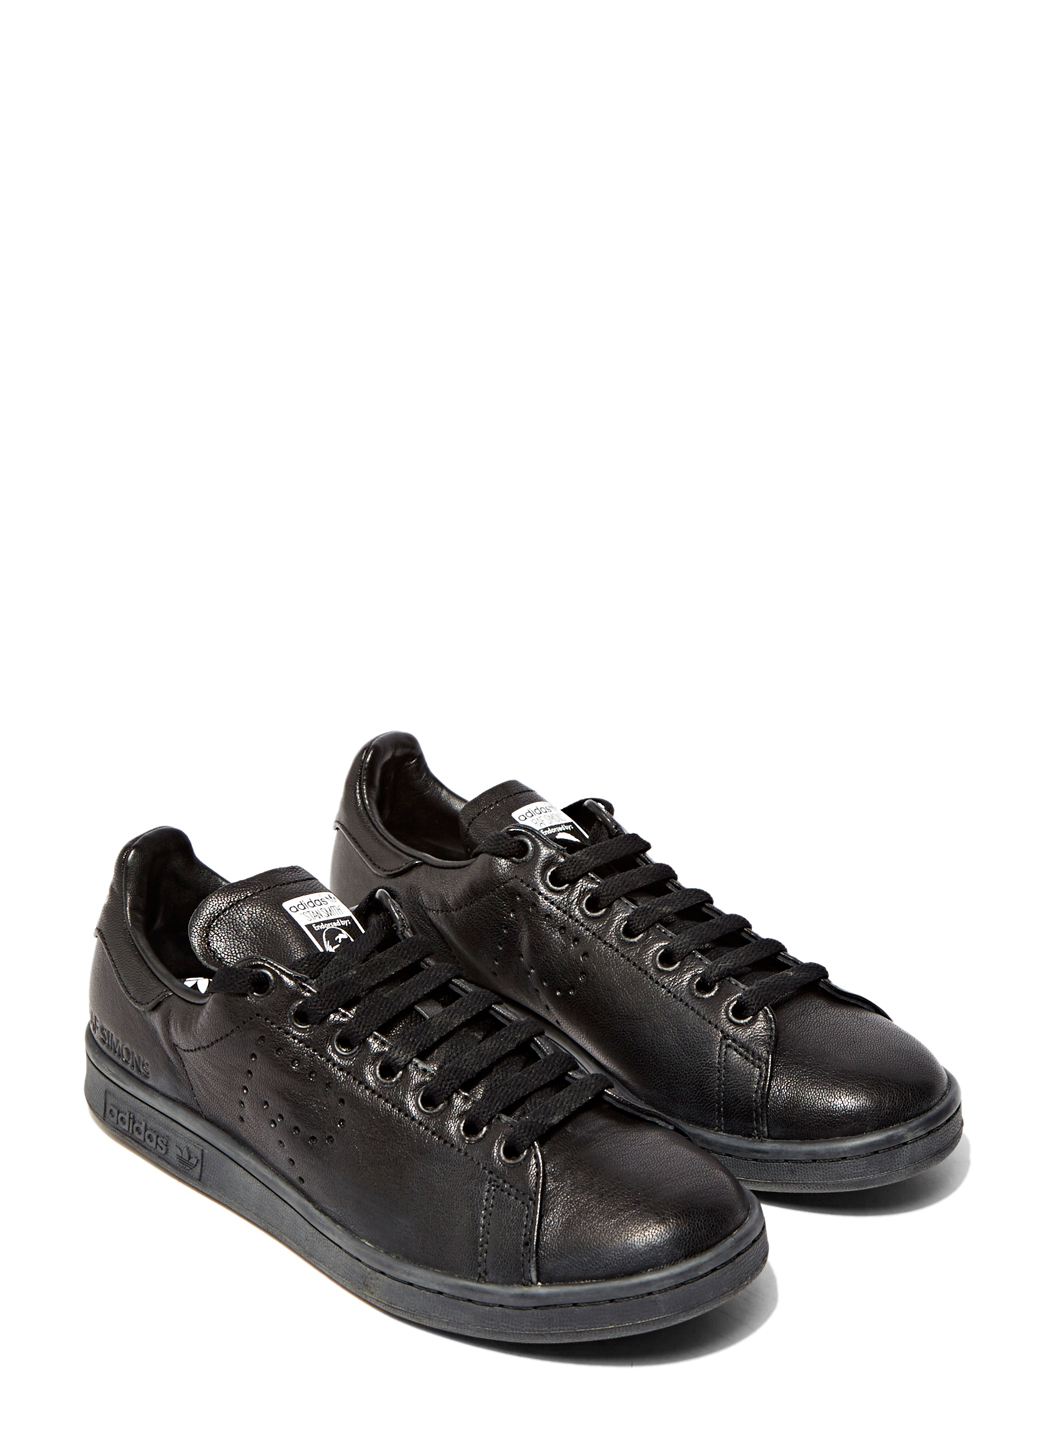 raf simons aged stan smith sneakers in black for men lyst. Black Bedroom Furniture Sets. Home Design Ideas